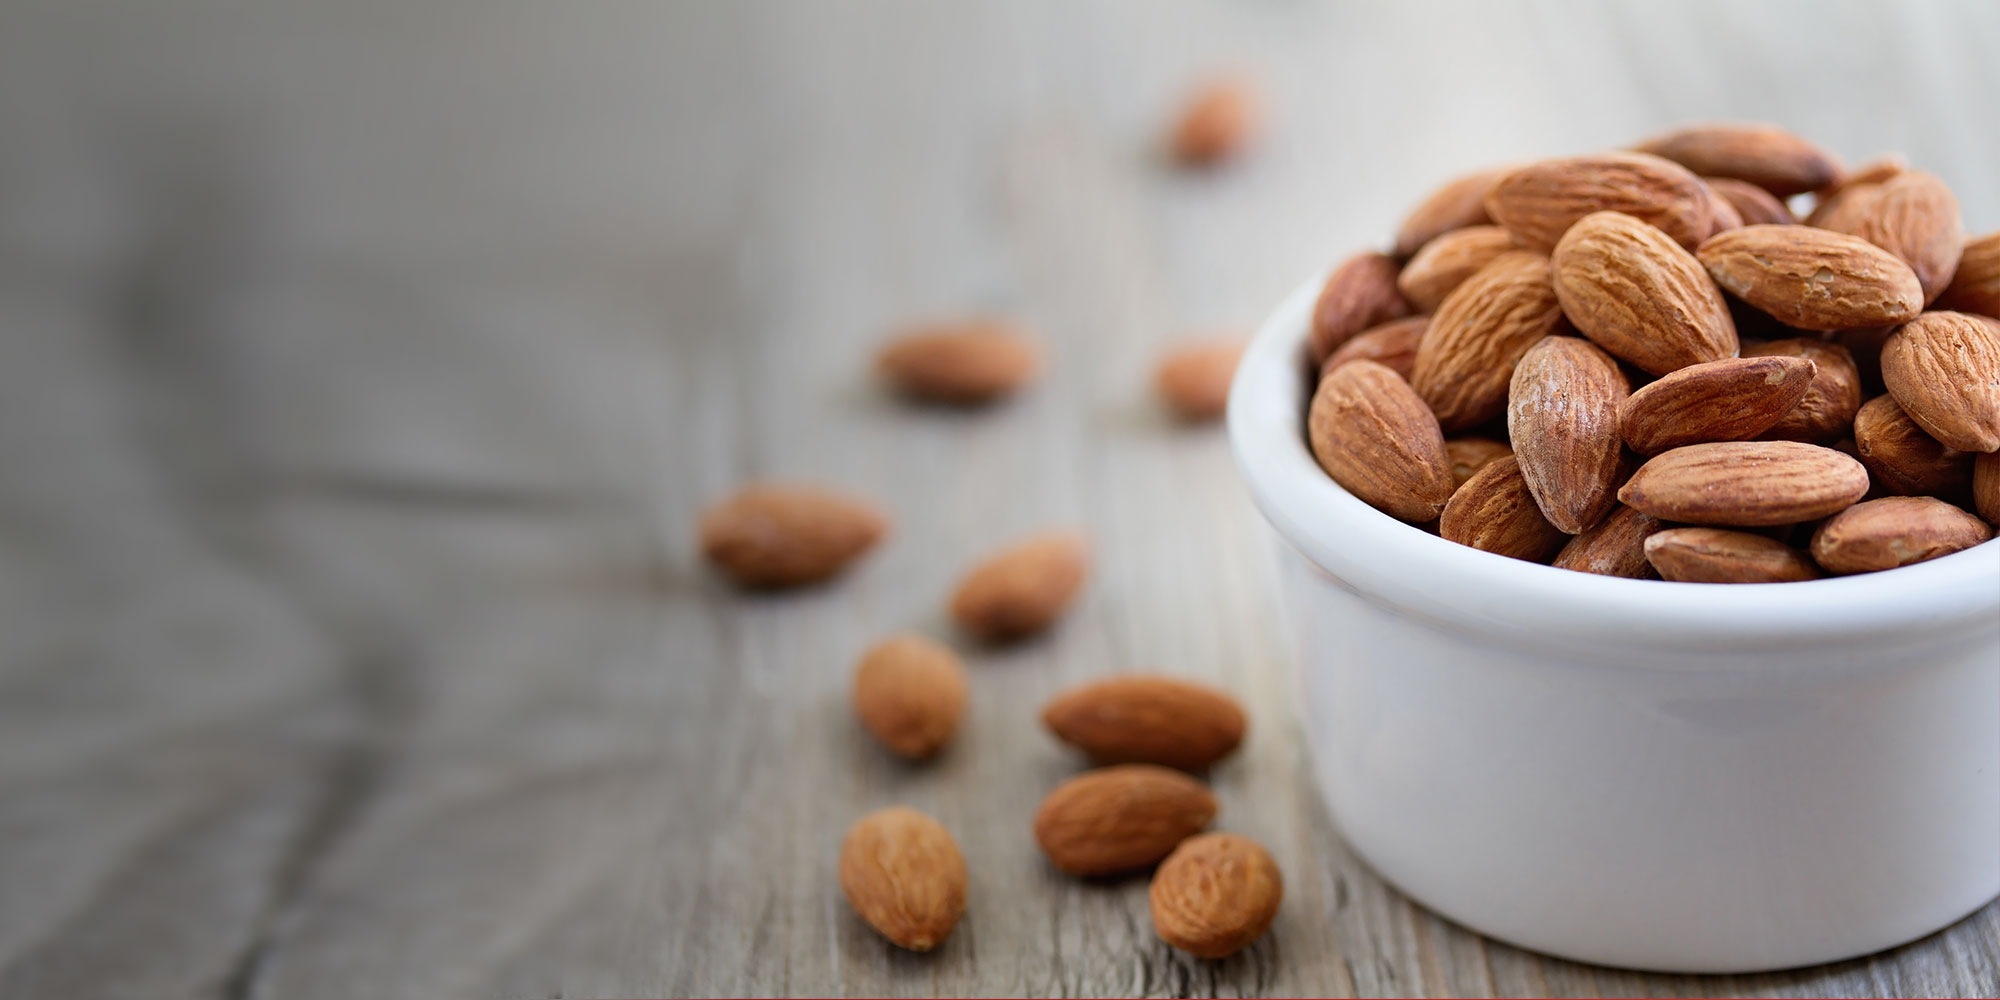 Healthy bowl of nutritious almonds